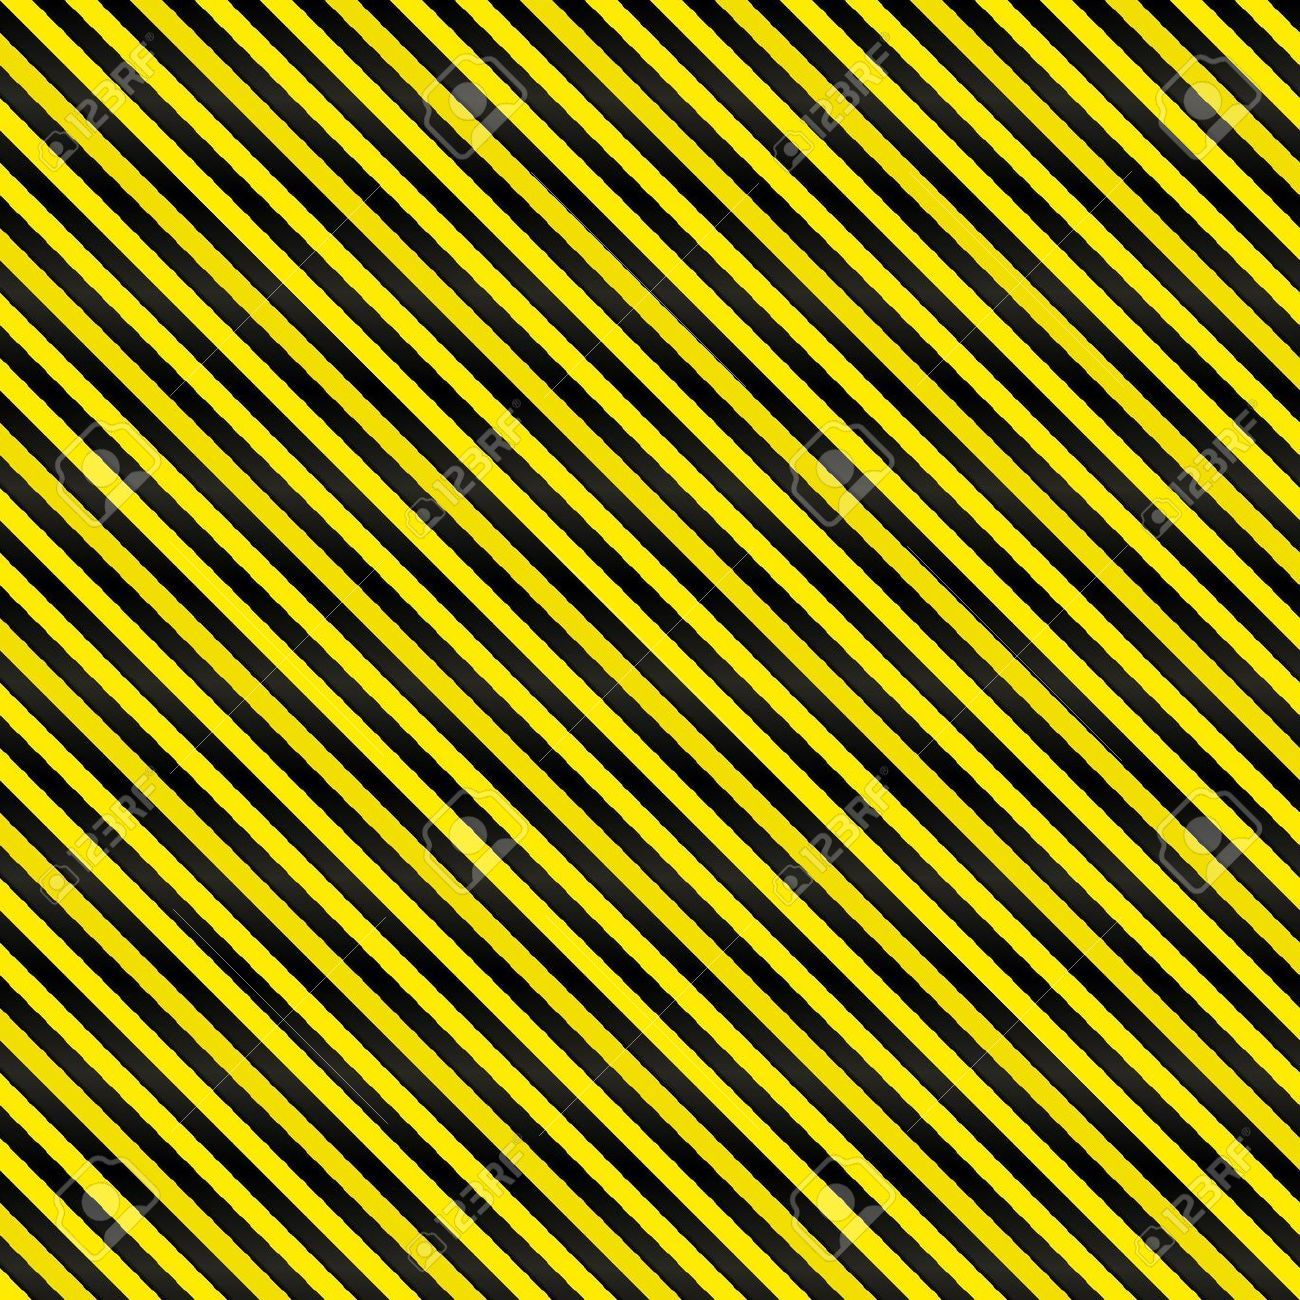 And black diagonal stripes background seamless background or wallpaper - Striped Black Texture Background Vector Free Download